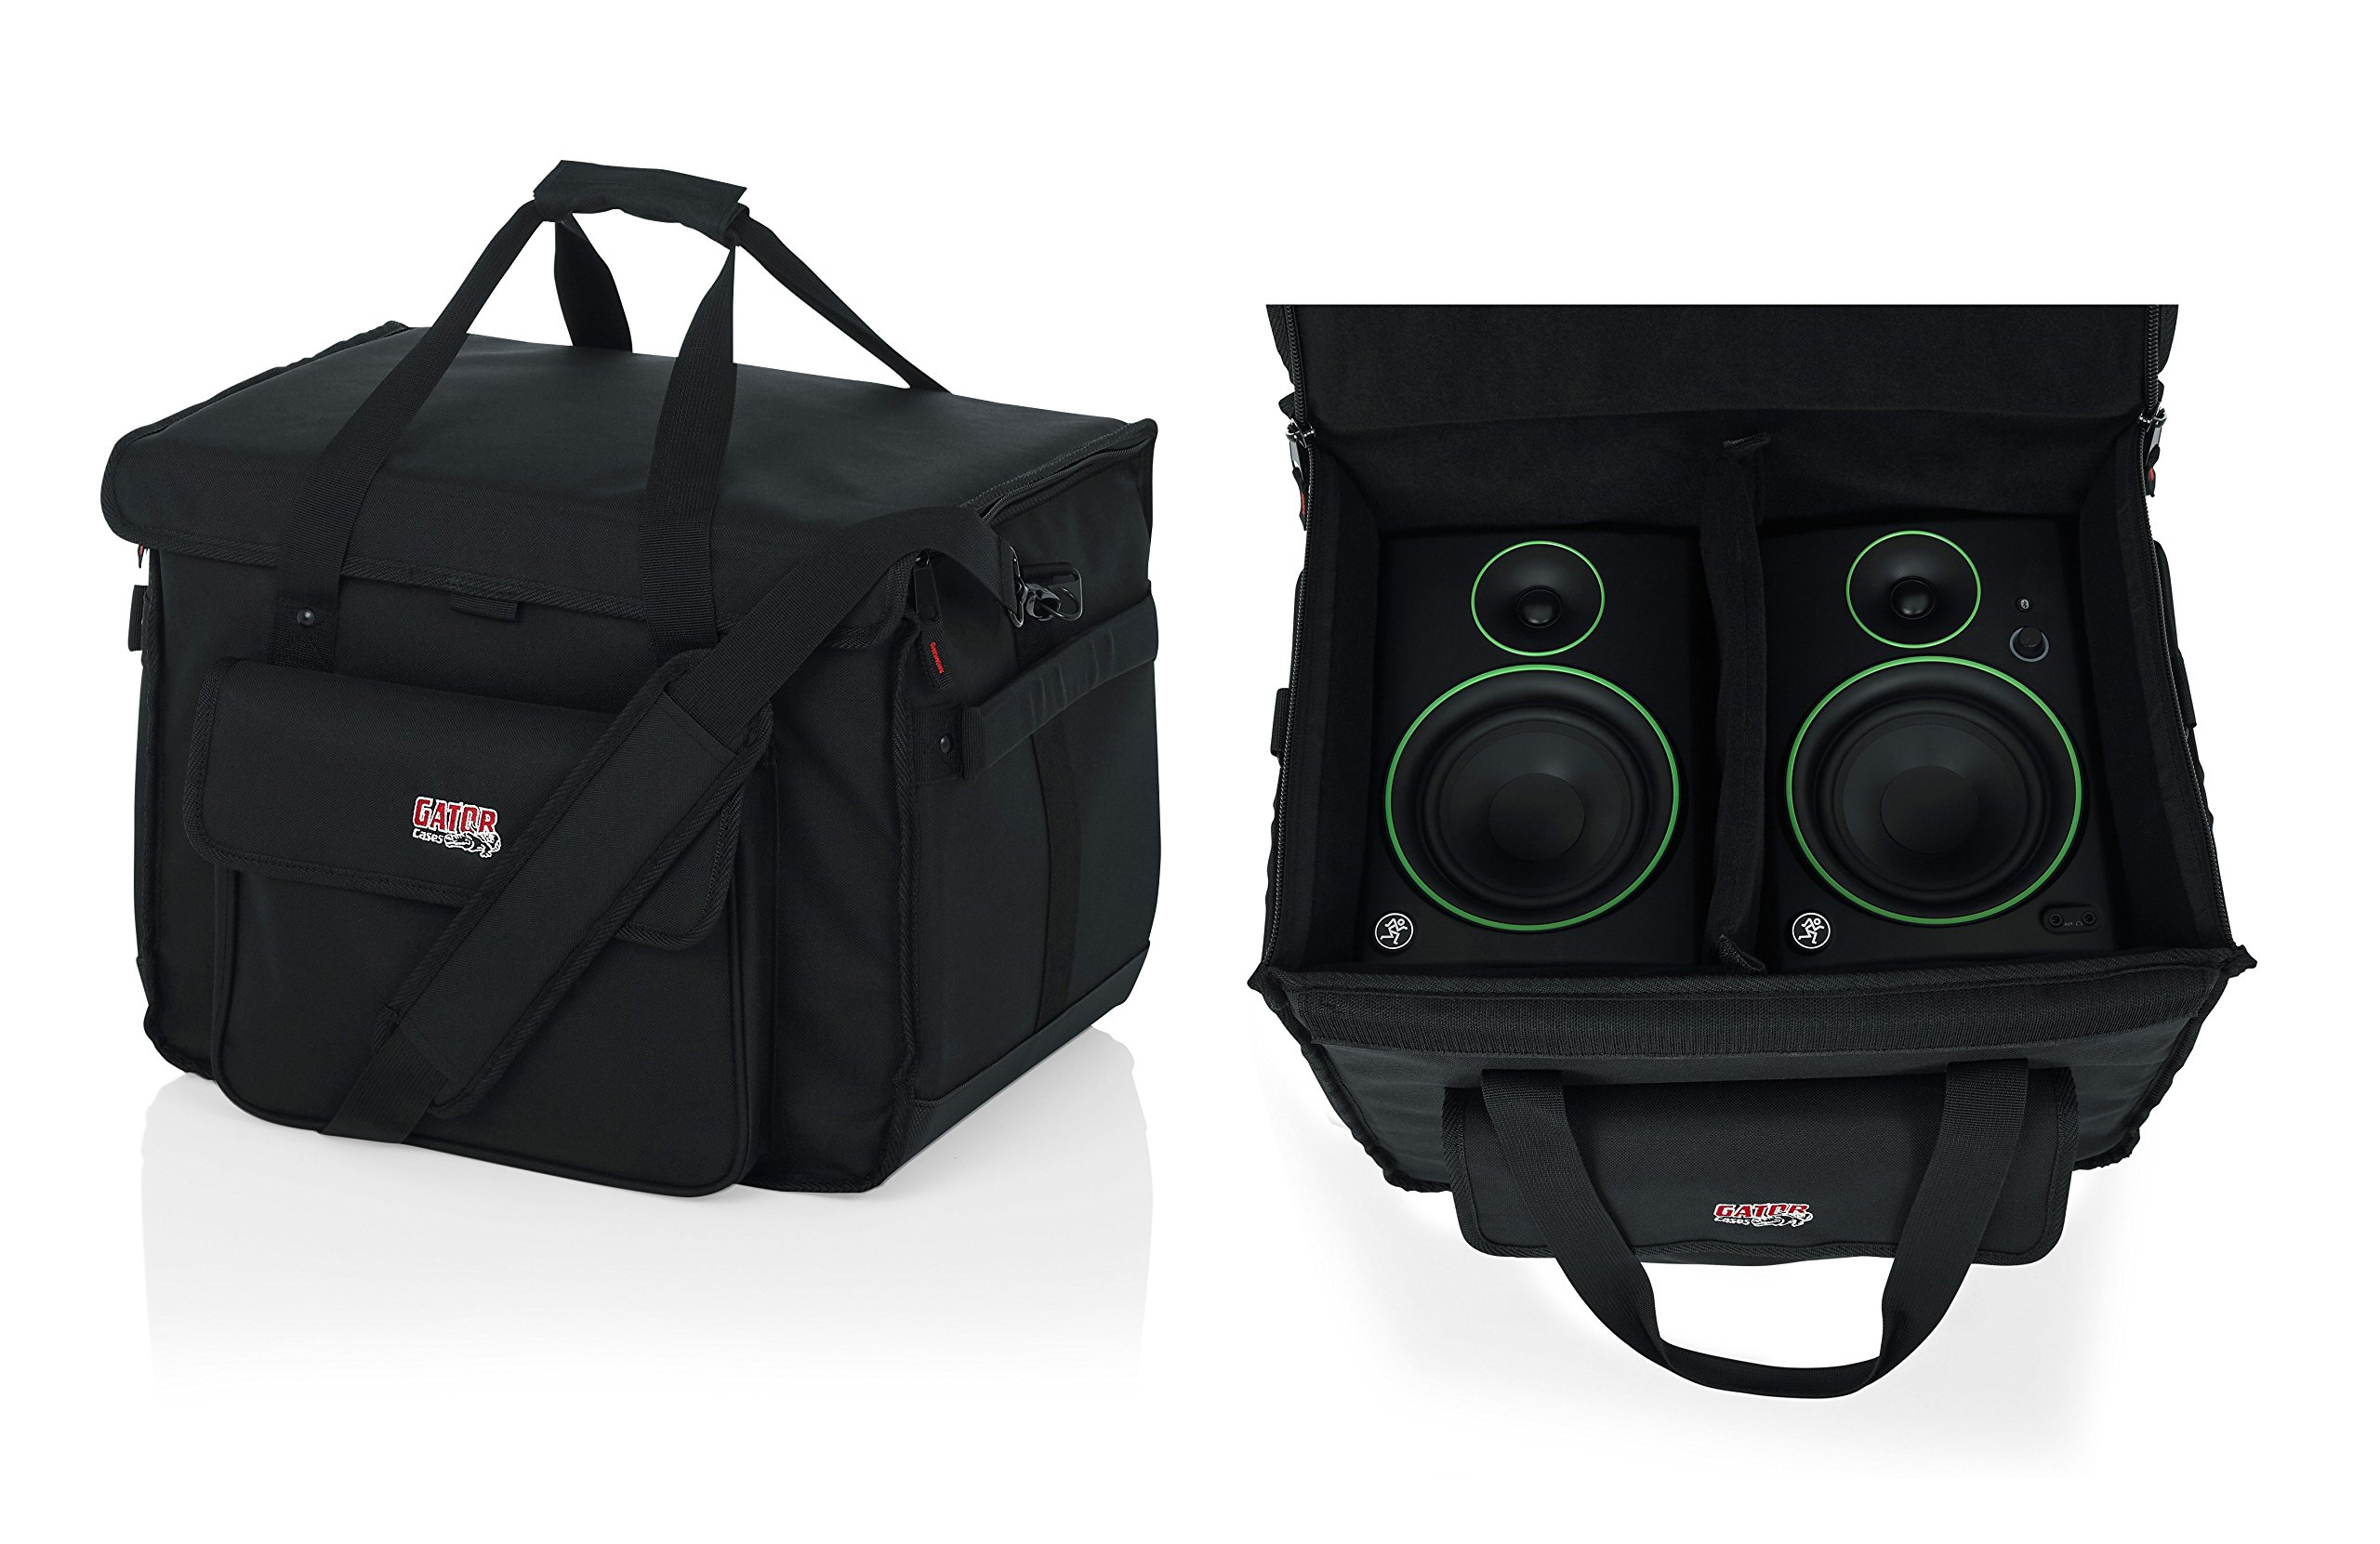 Gator Cases Studio Monitor Tote Bag Holds (2) Powered Monitors Up to 5'' Driver Range; Fits JBL, Mackie, KRK, & More (G-STUDIOMON1) by Gator